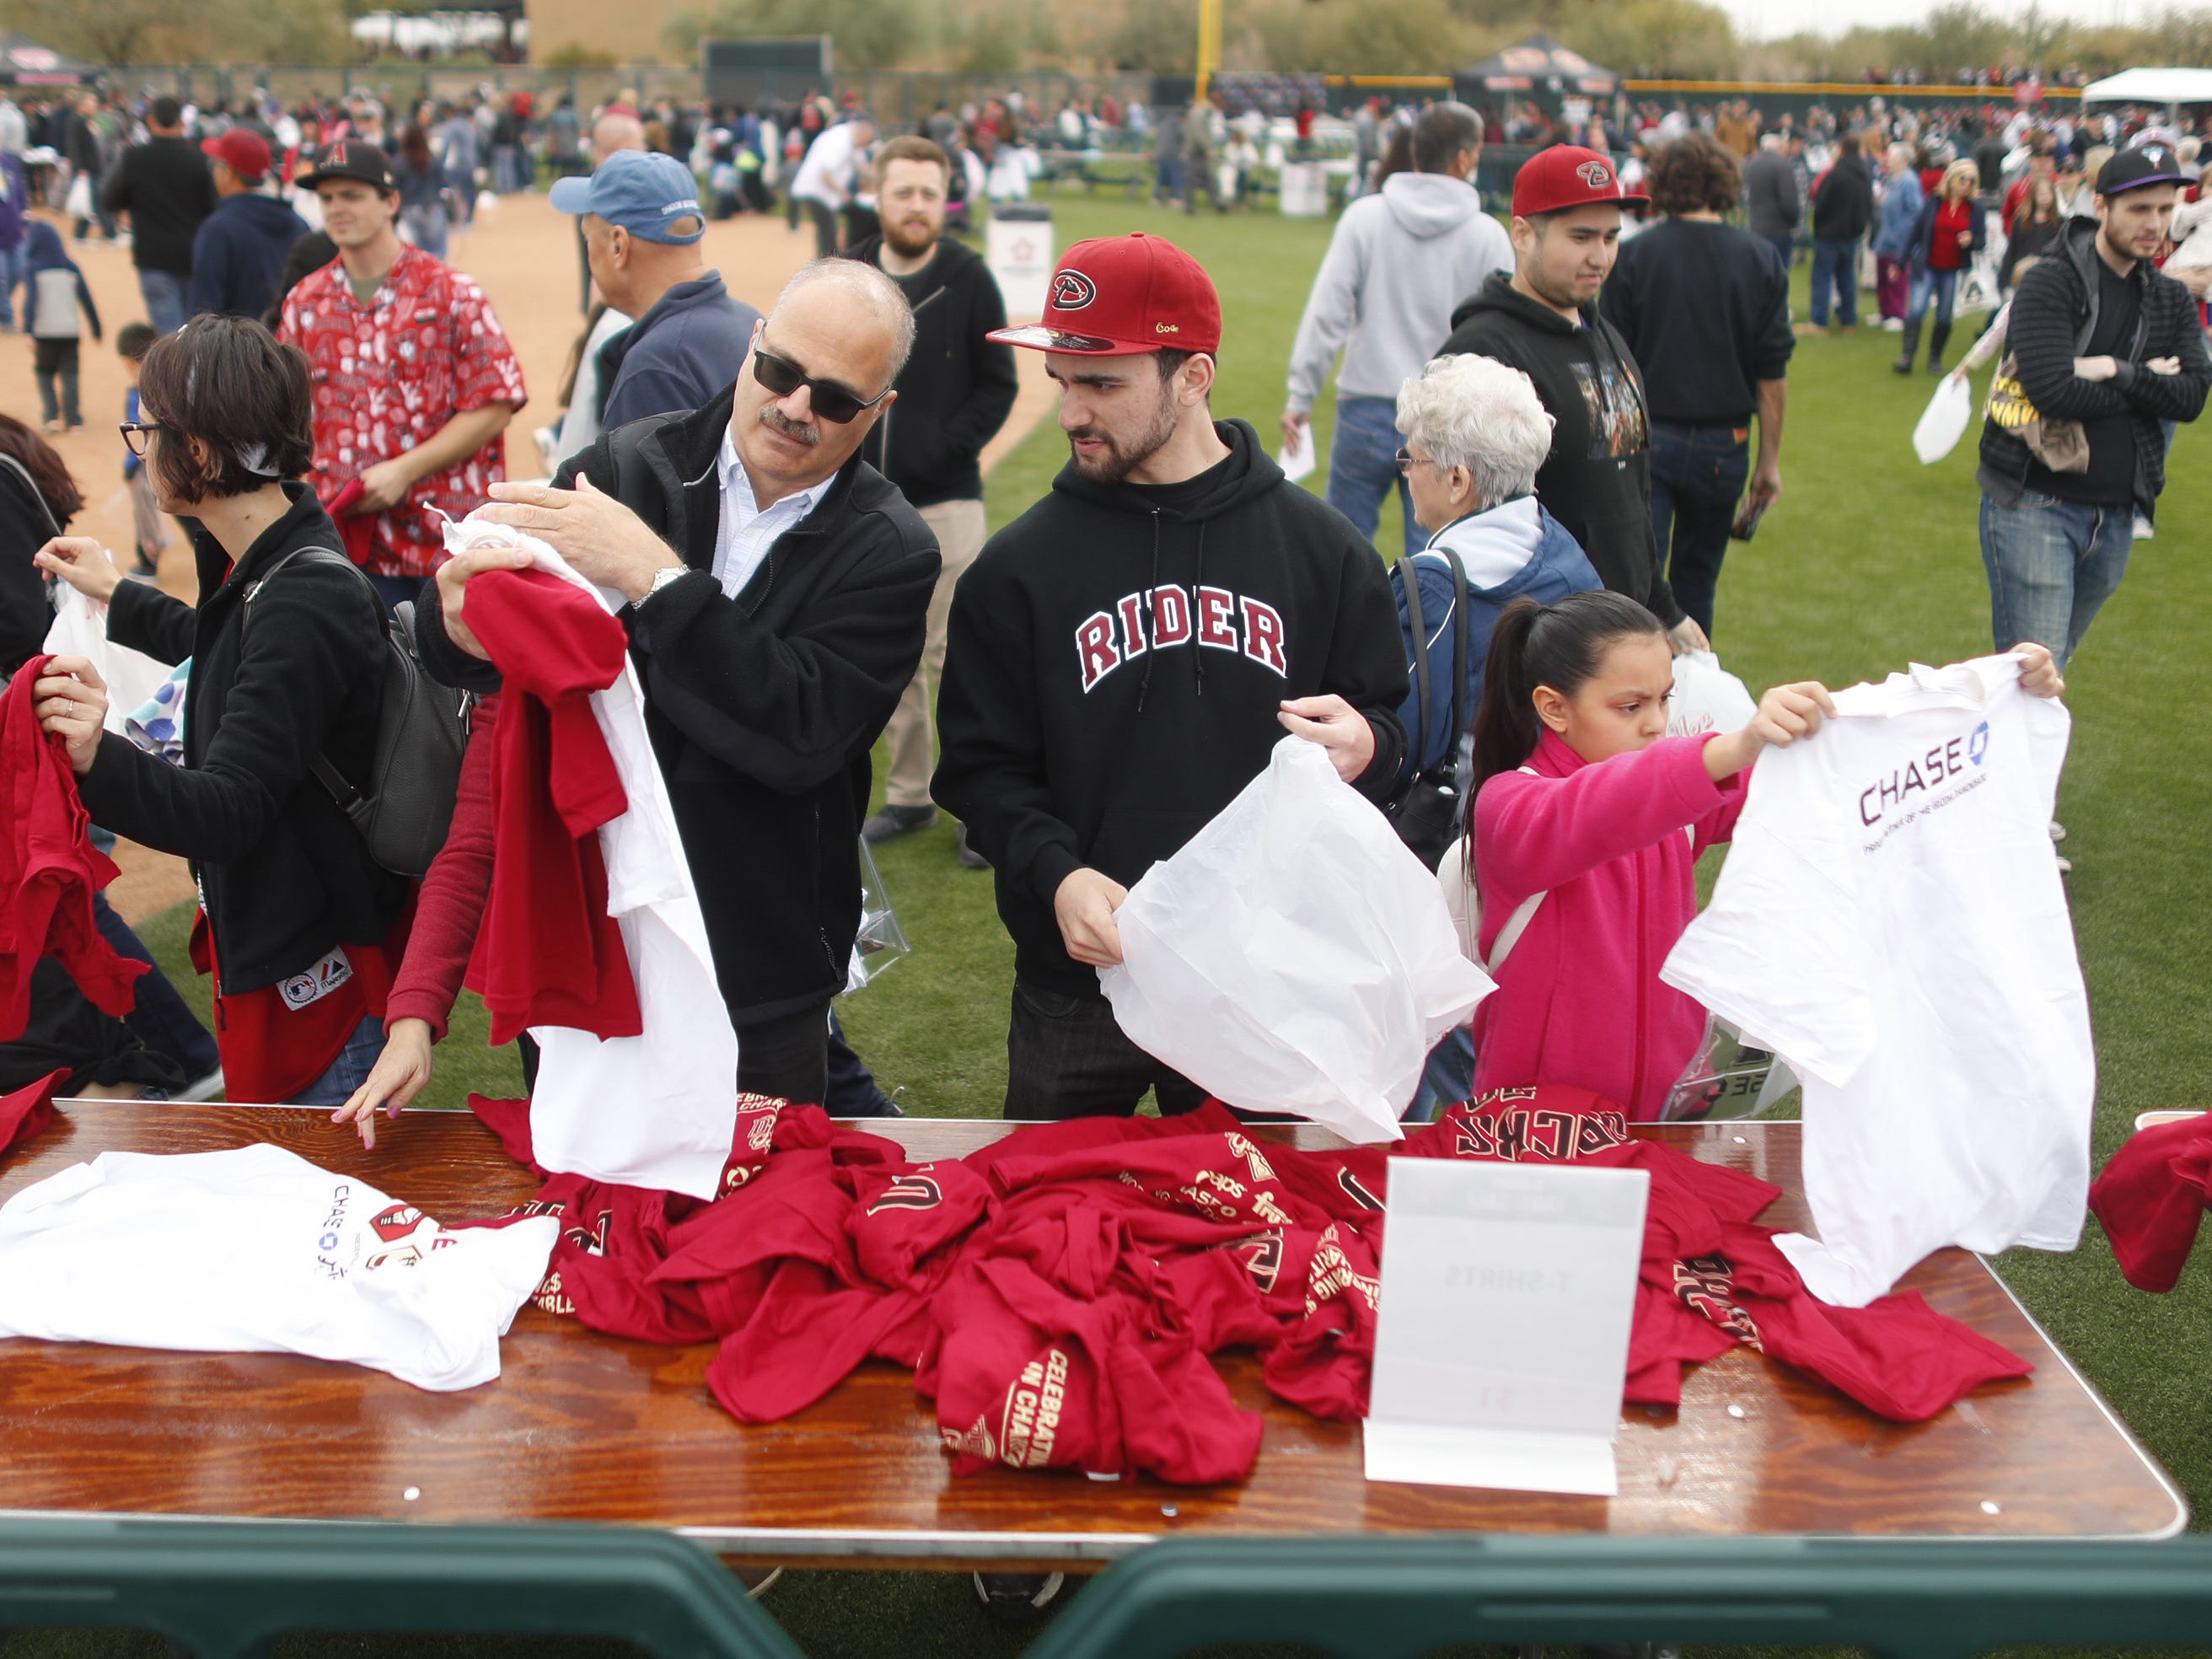 Fans look through discount merchandise on the field during the Diamondbacks Fan Fest at Salt River at Talking Sticks on February 9, 2019.